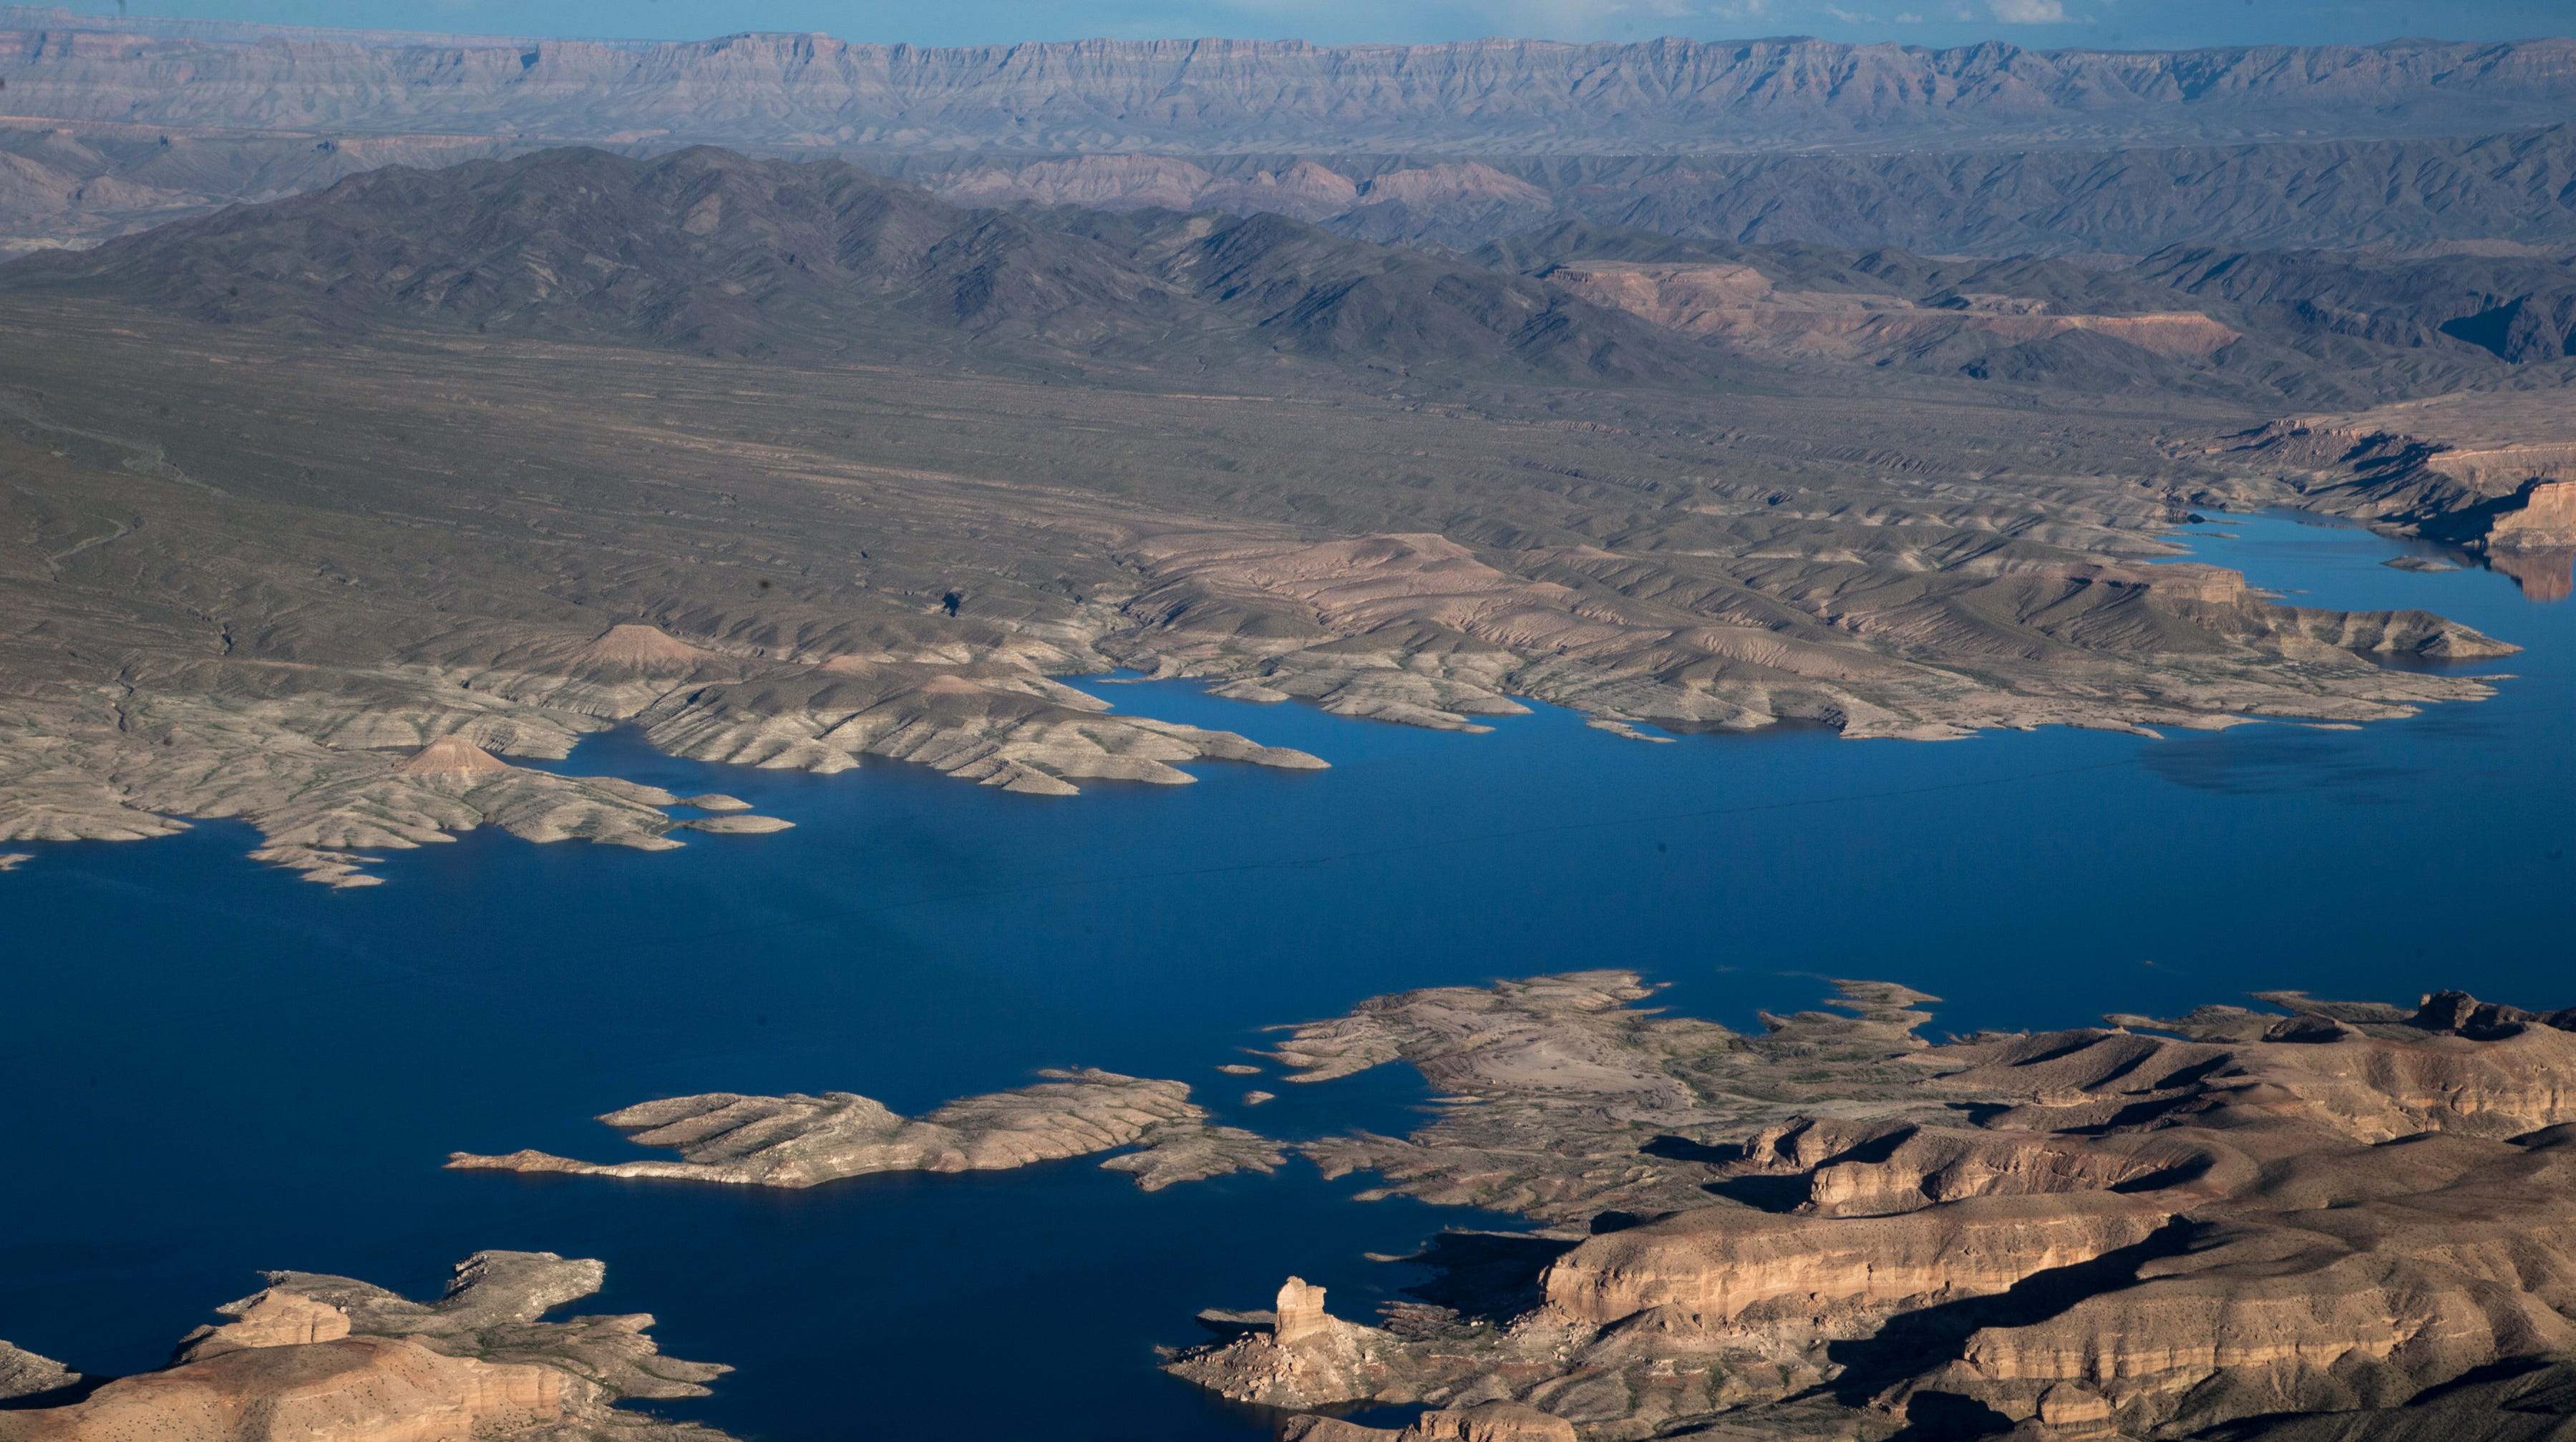 Water planning, climate uncertainty are main themes at Phoenix event